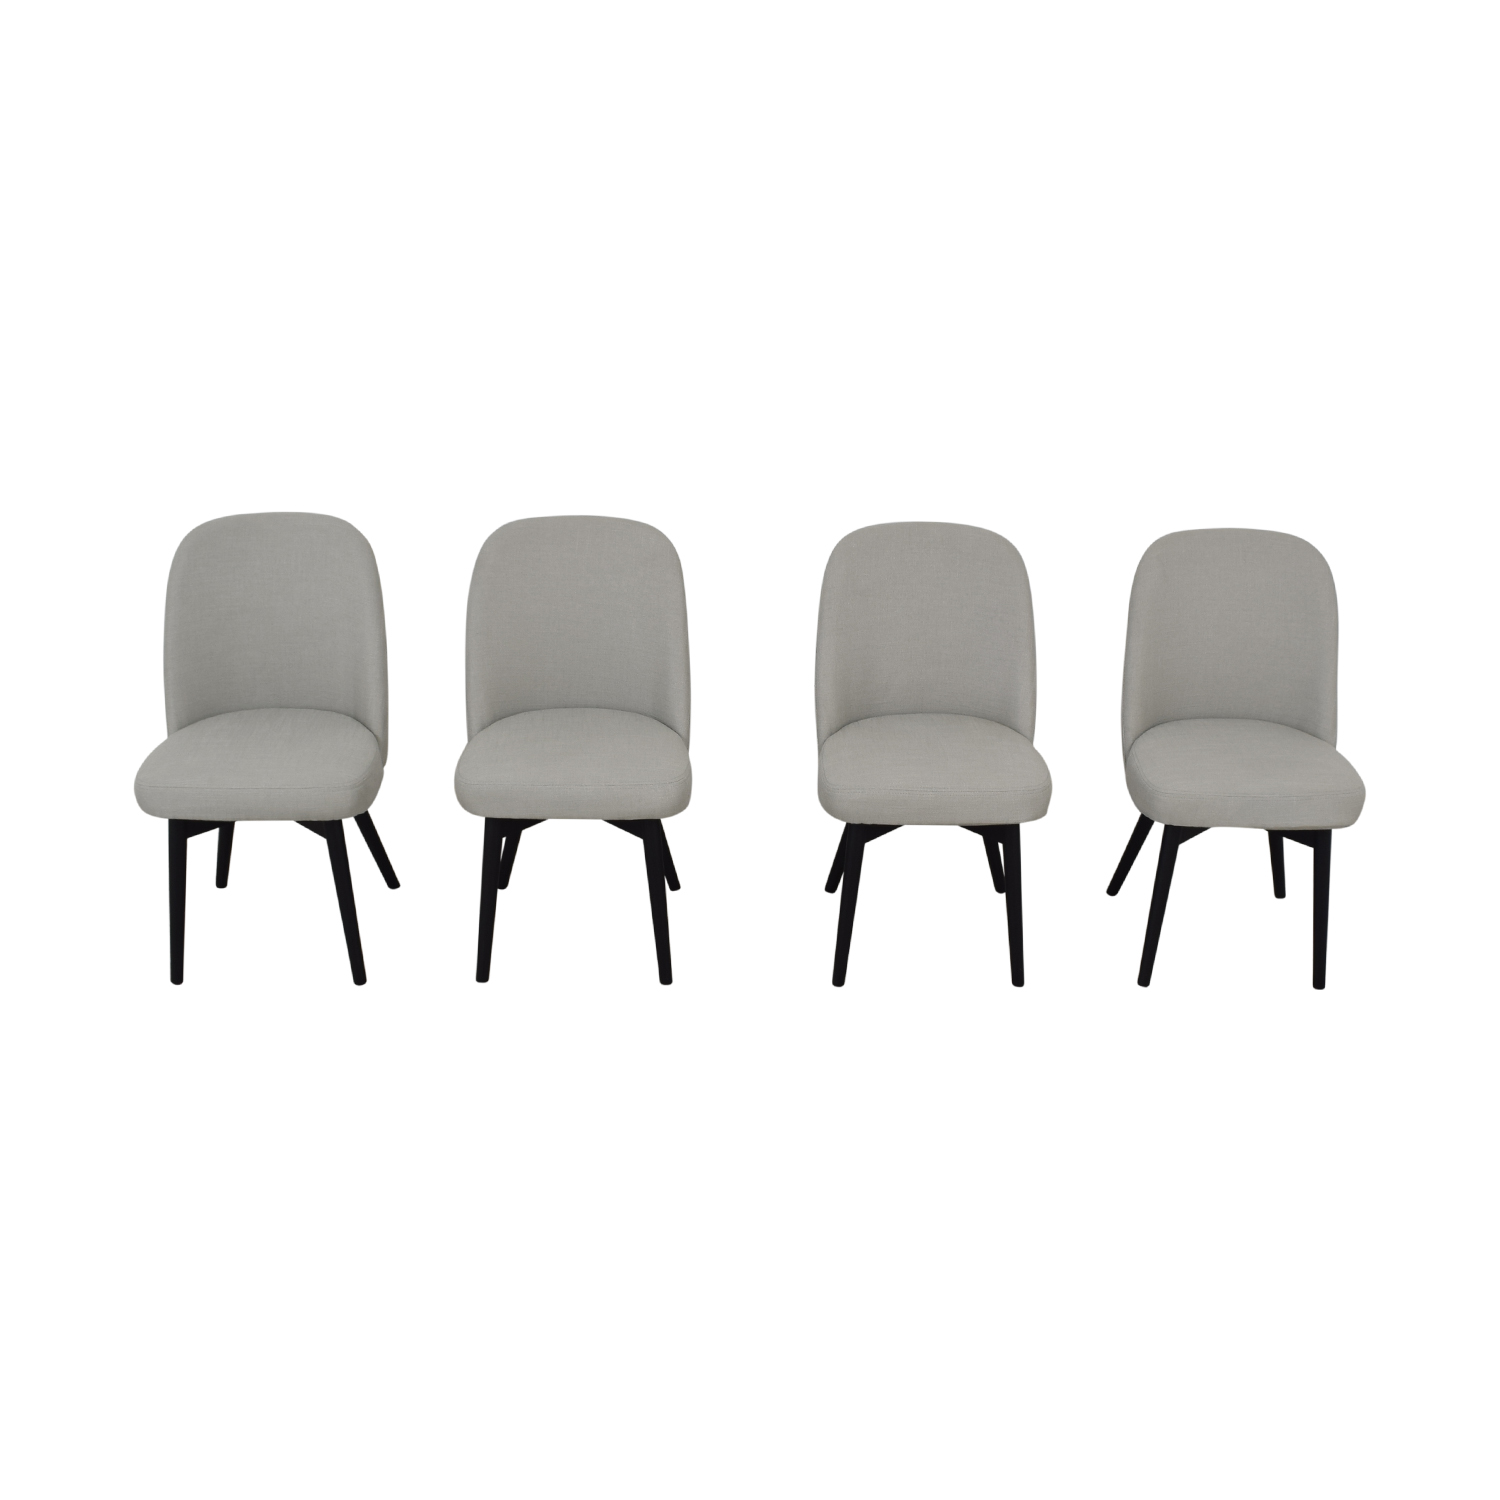 Interior Define Dylan Grey Dining Chairs nj